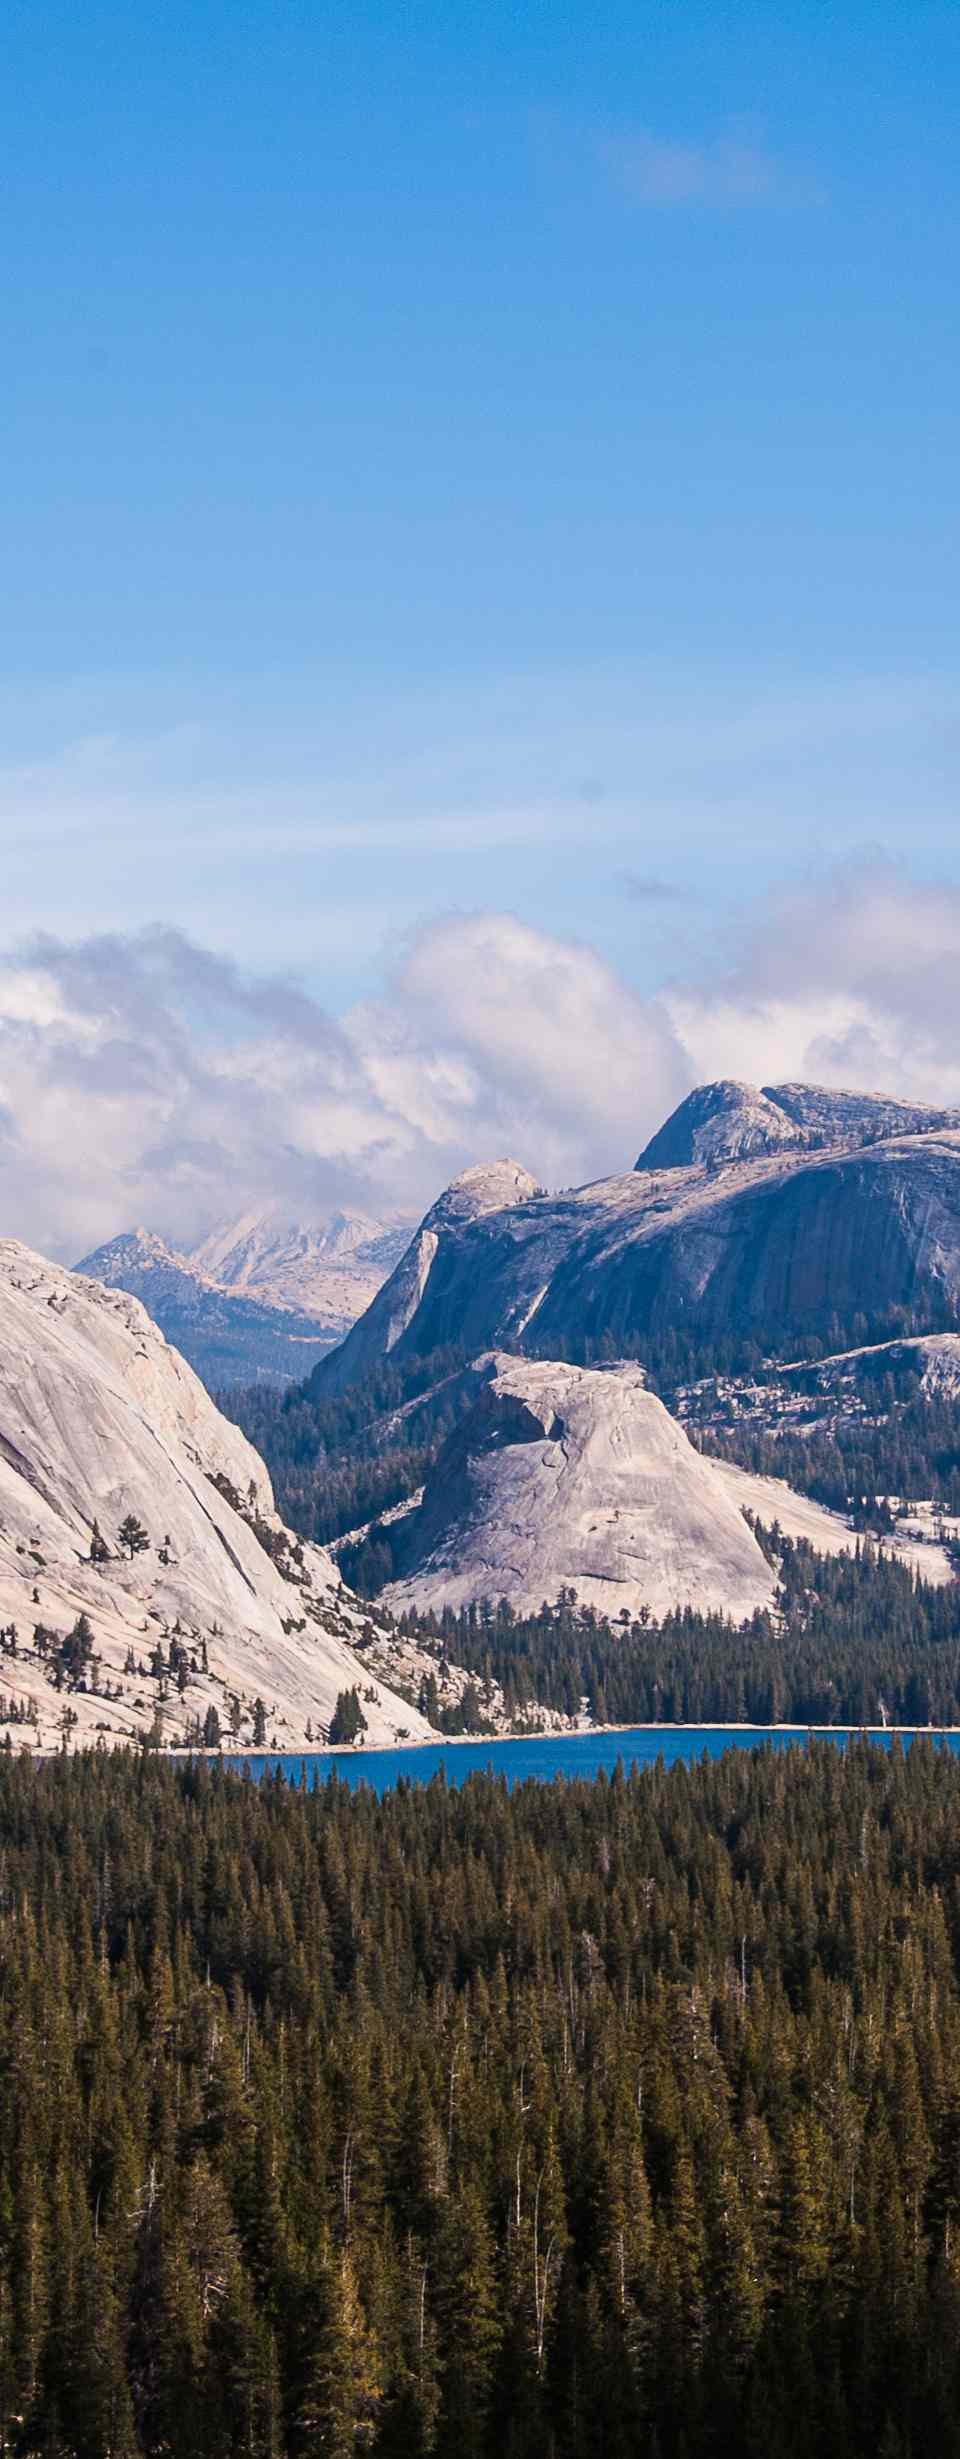 Tioga Pass landscape, Yosemite National Park, California, USA